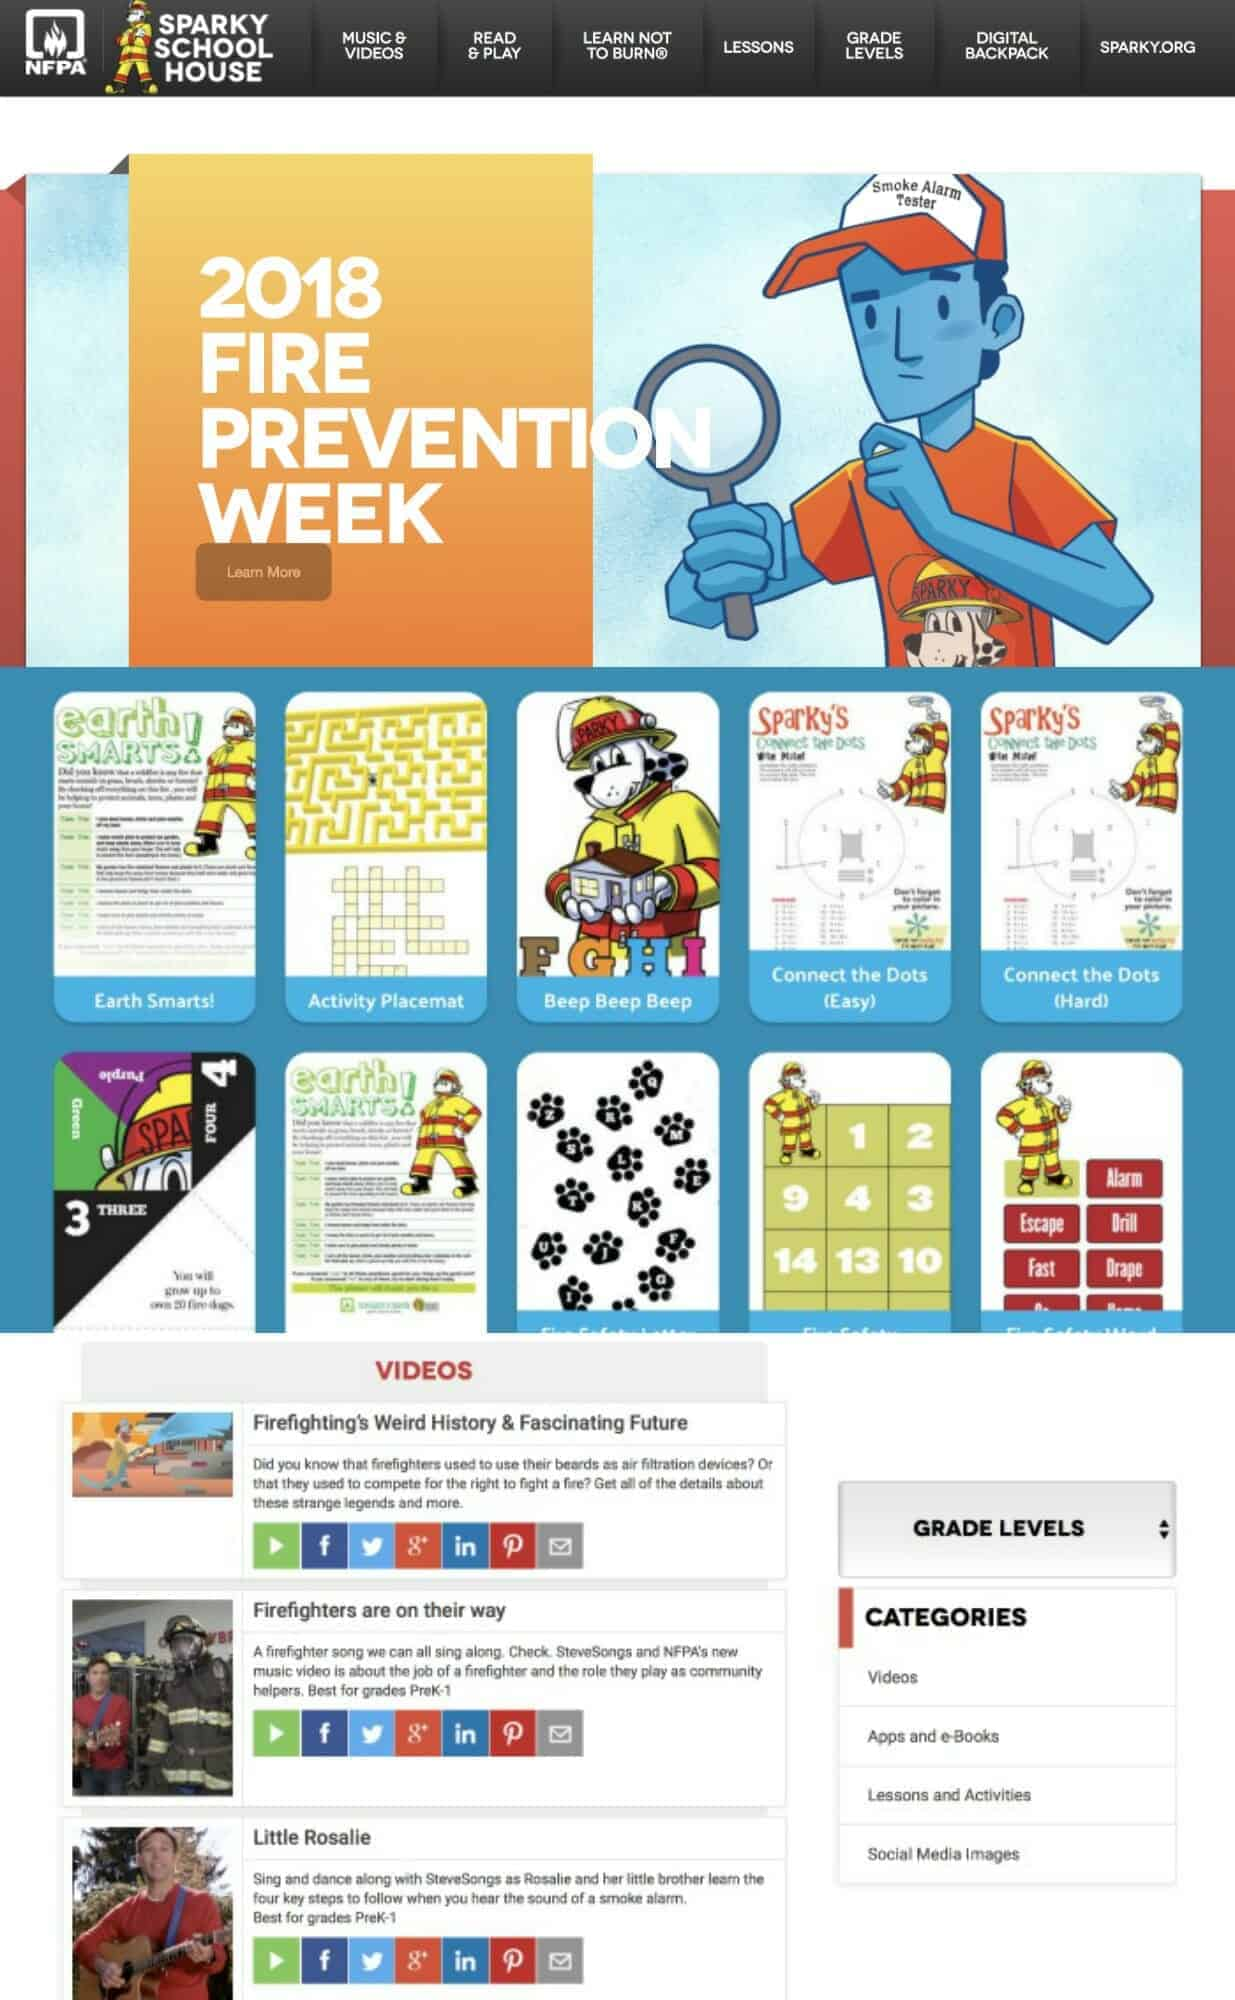 2018 Fire Prevention Week Resources for Parents and Teachers